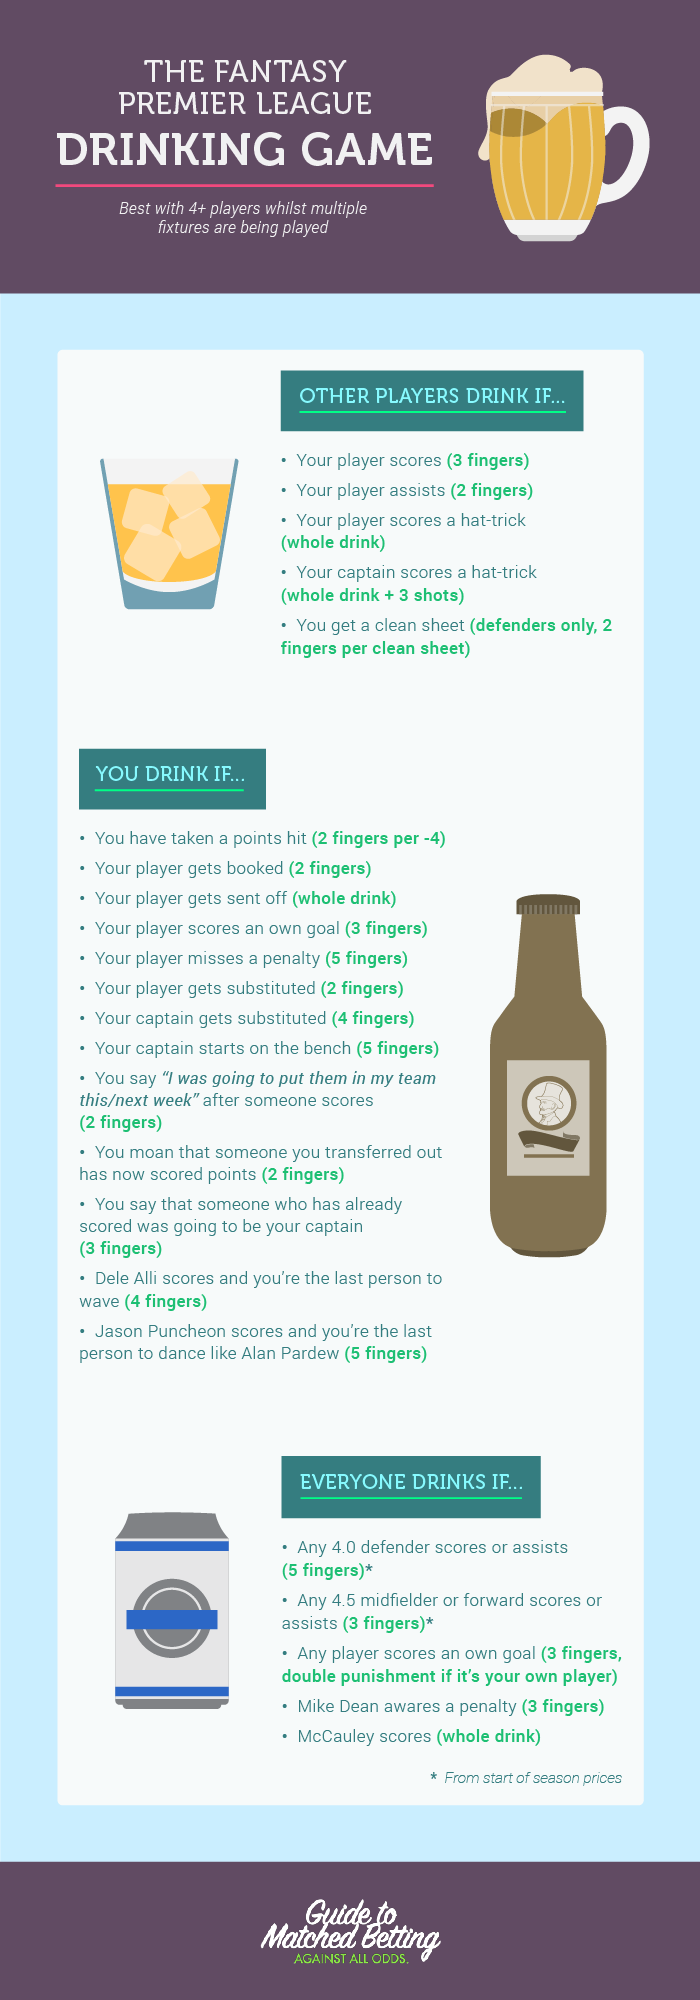 Fantasy Premier League drinking game rules